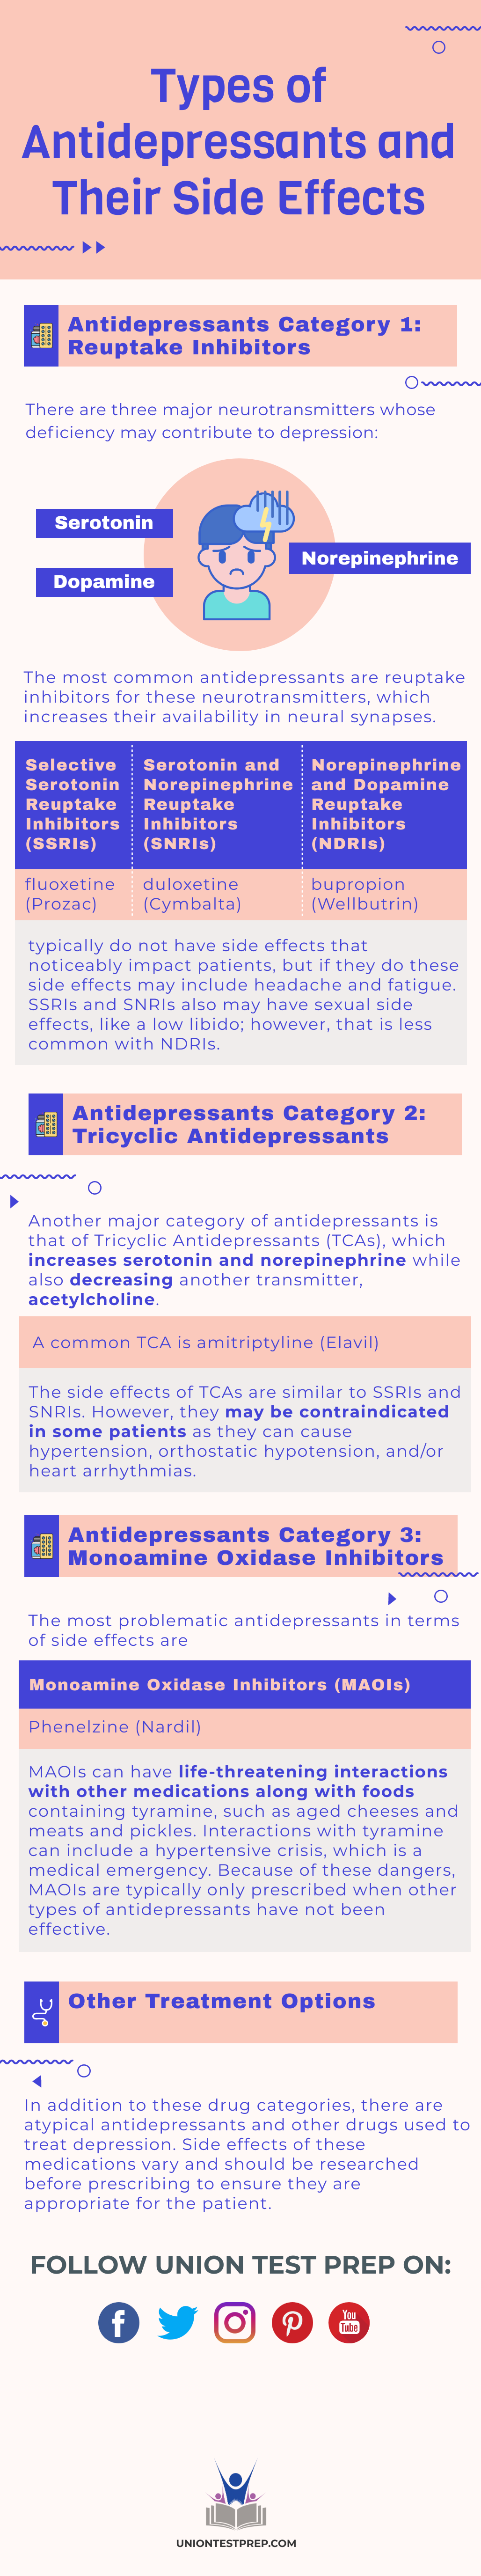 Types of Antidepressants and Their Side Effects